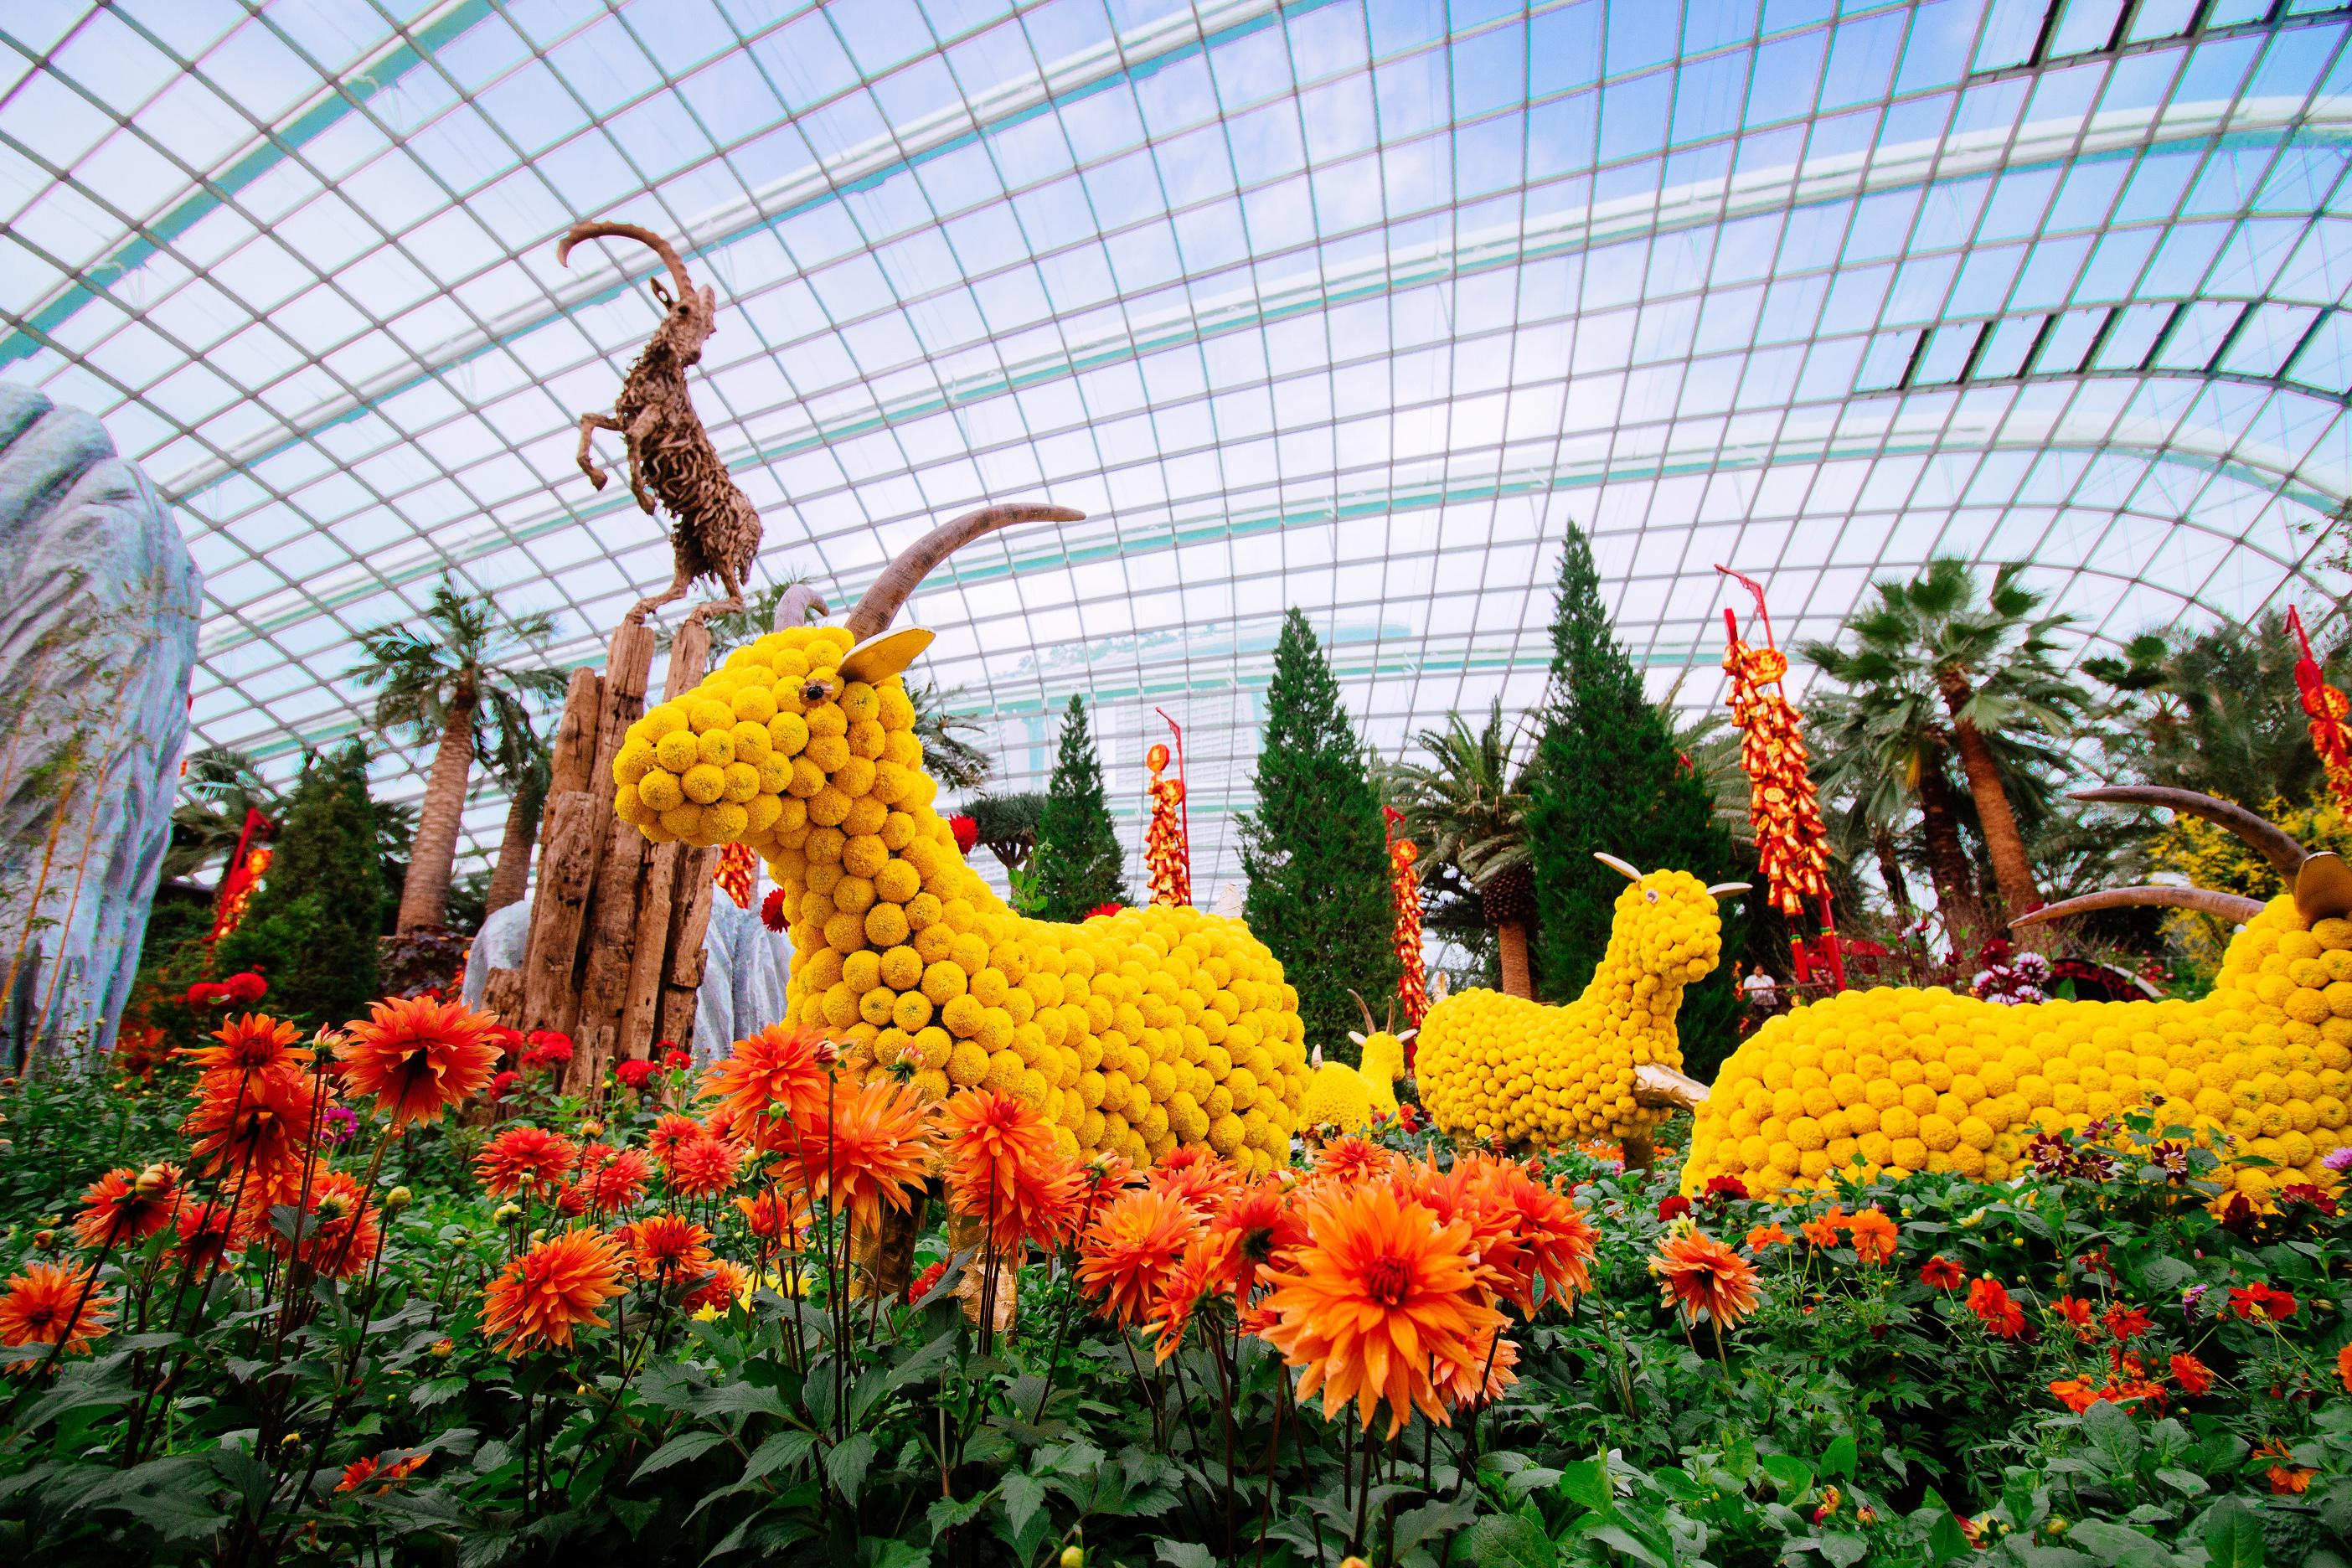 Garden By The Bay Singapore Gardens By The Bay Waterfall With Garden By The Bay Garden By The